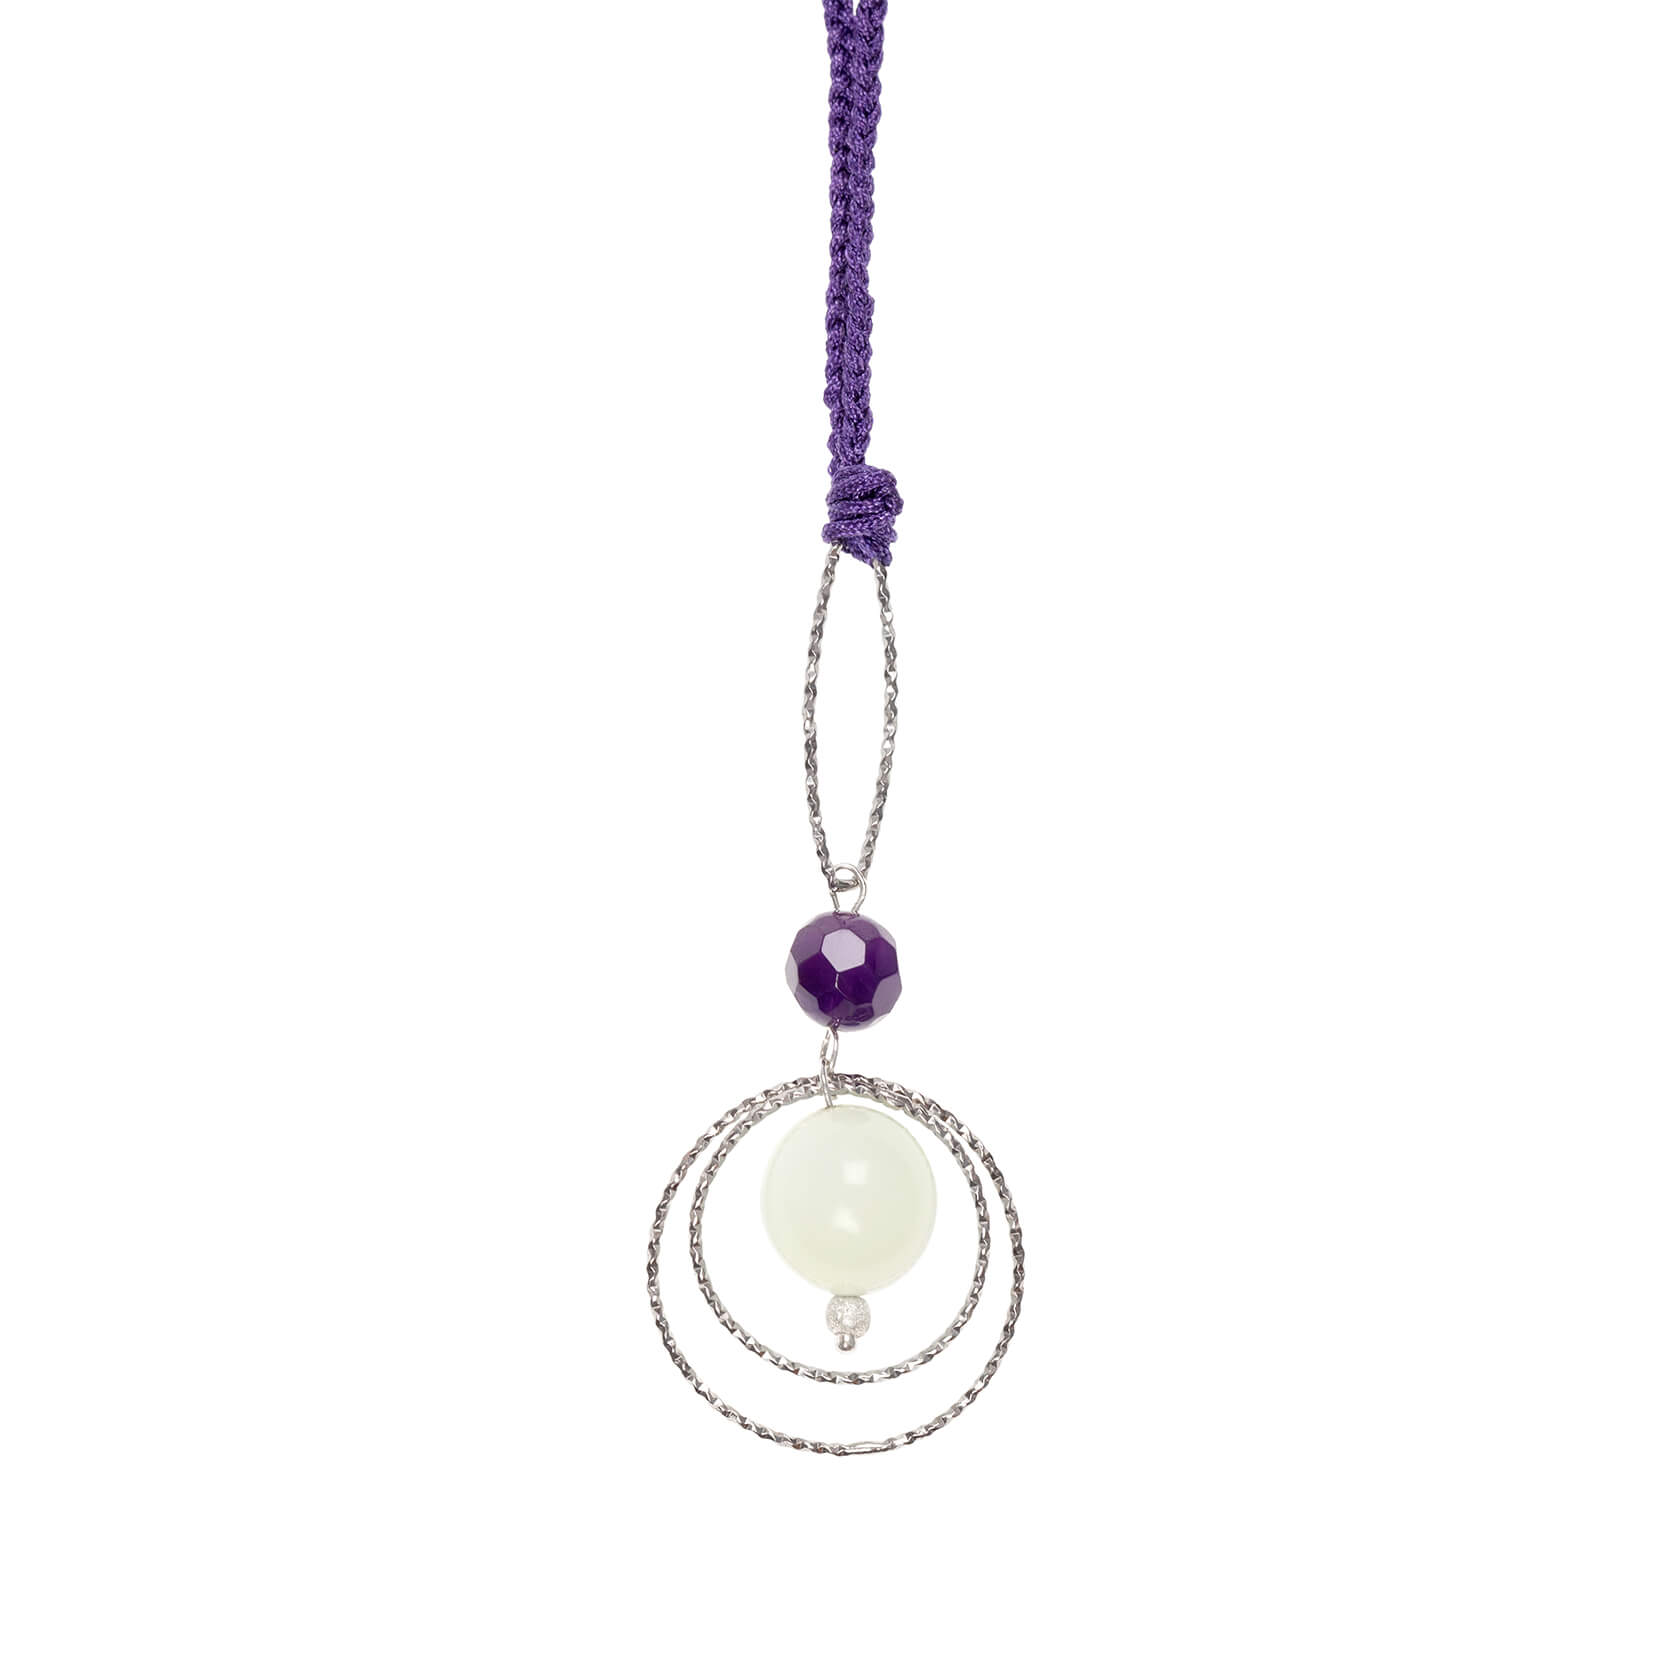 Jade and amethyst pendant